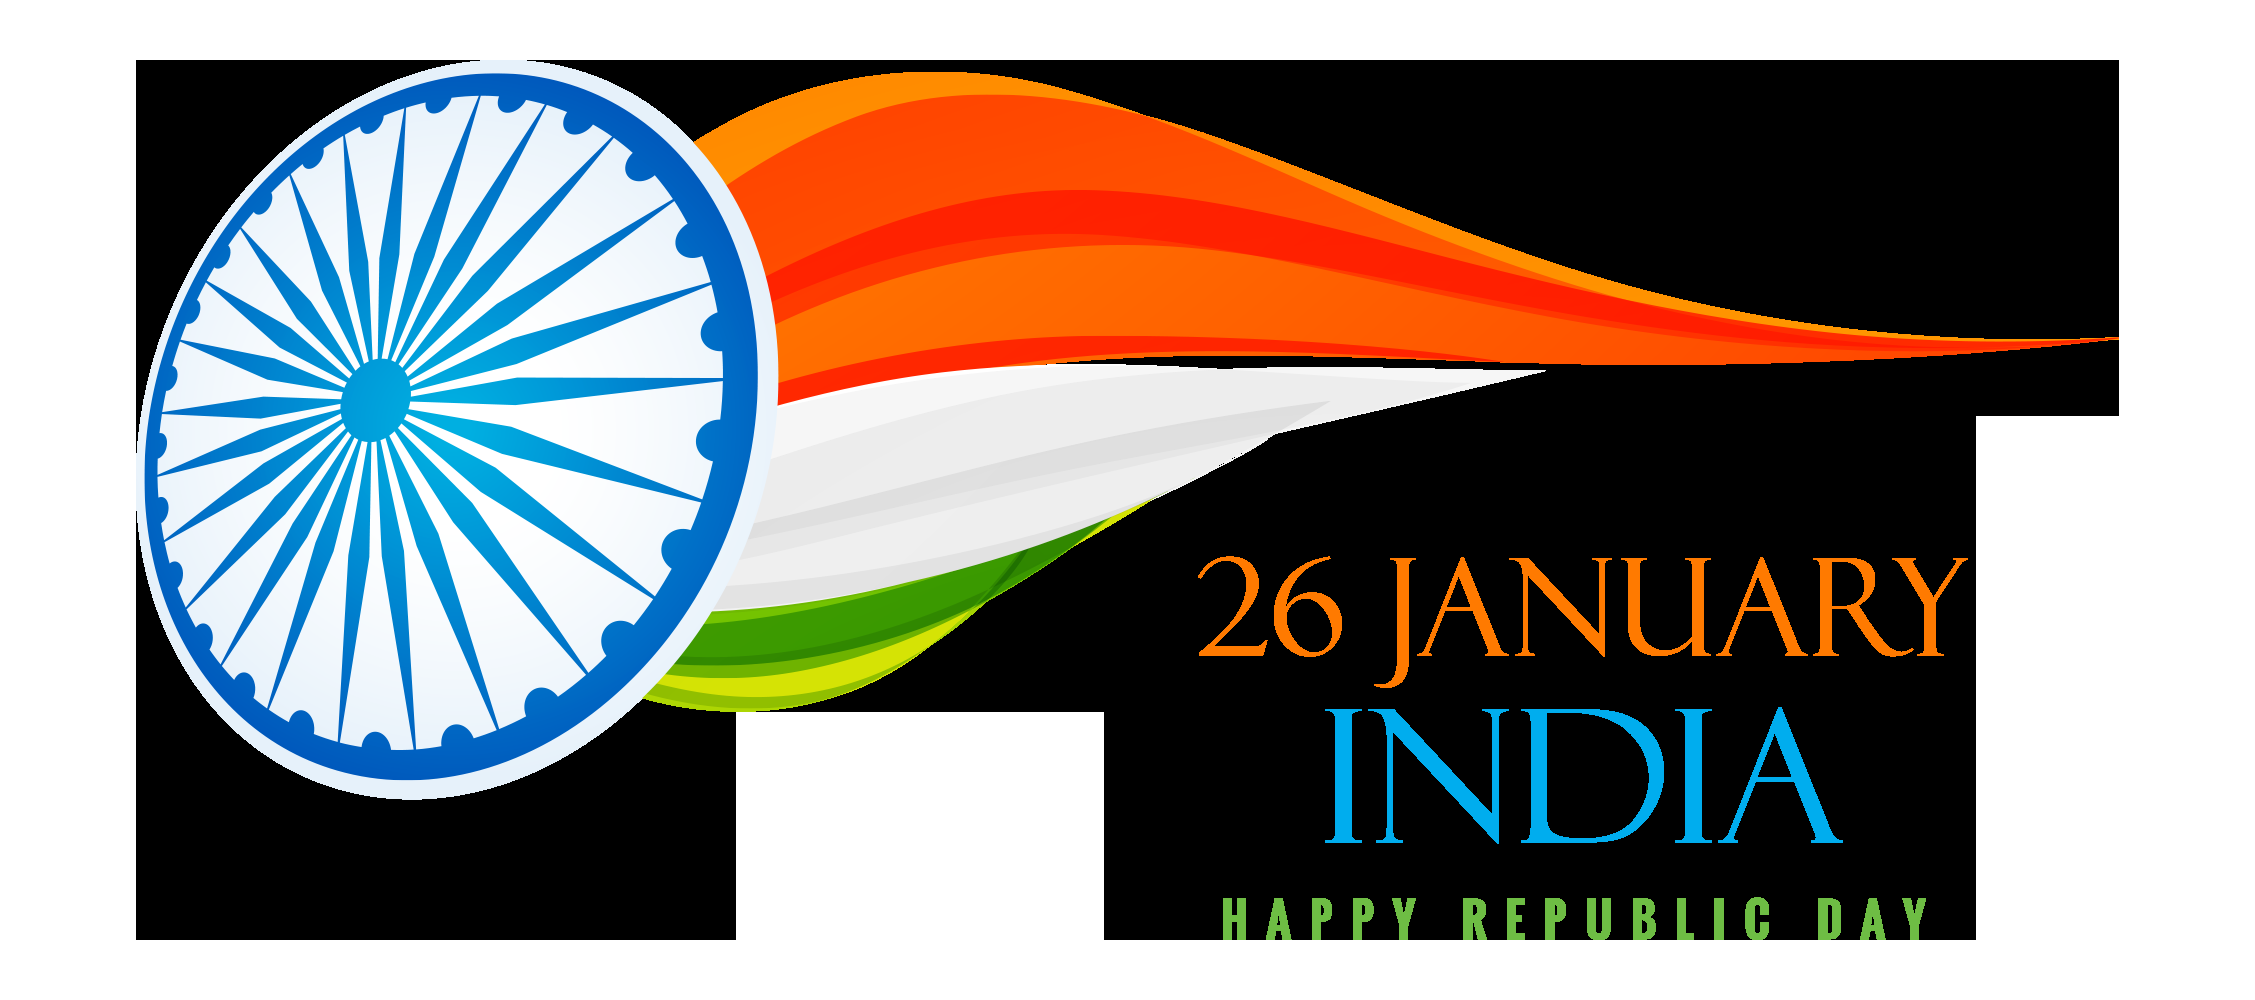 <p>www.jharkhandstatenews.com wishes you all a very Happy Republic Day.</p>